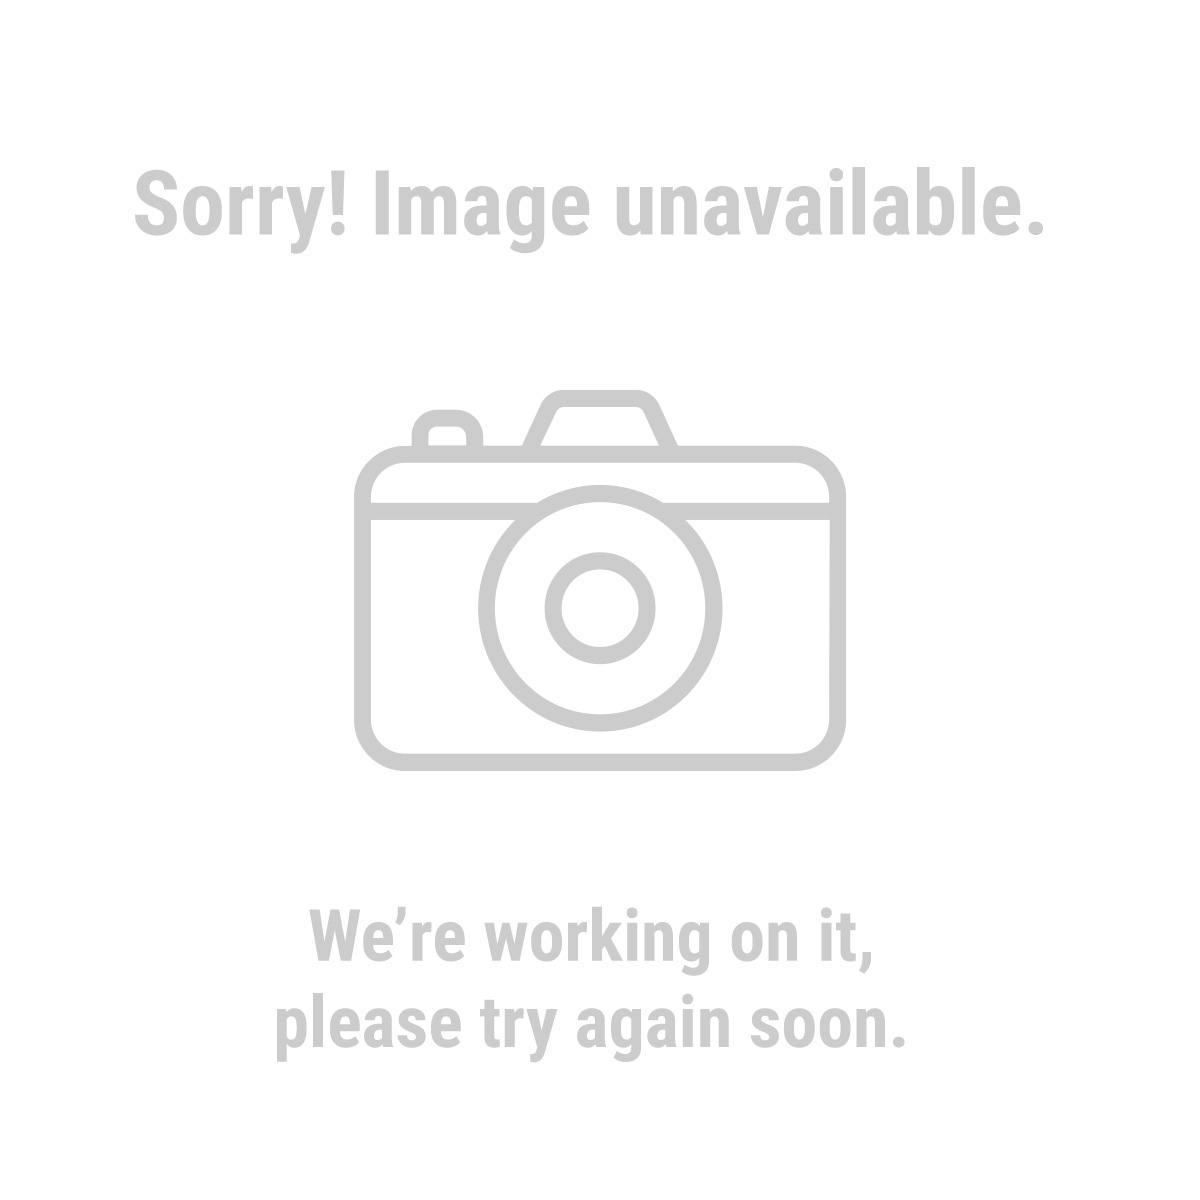 Haul-Master 69377 Drywall Panel Hoist